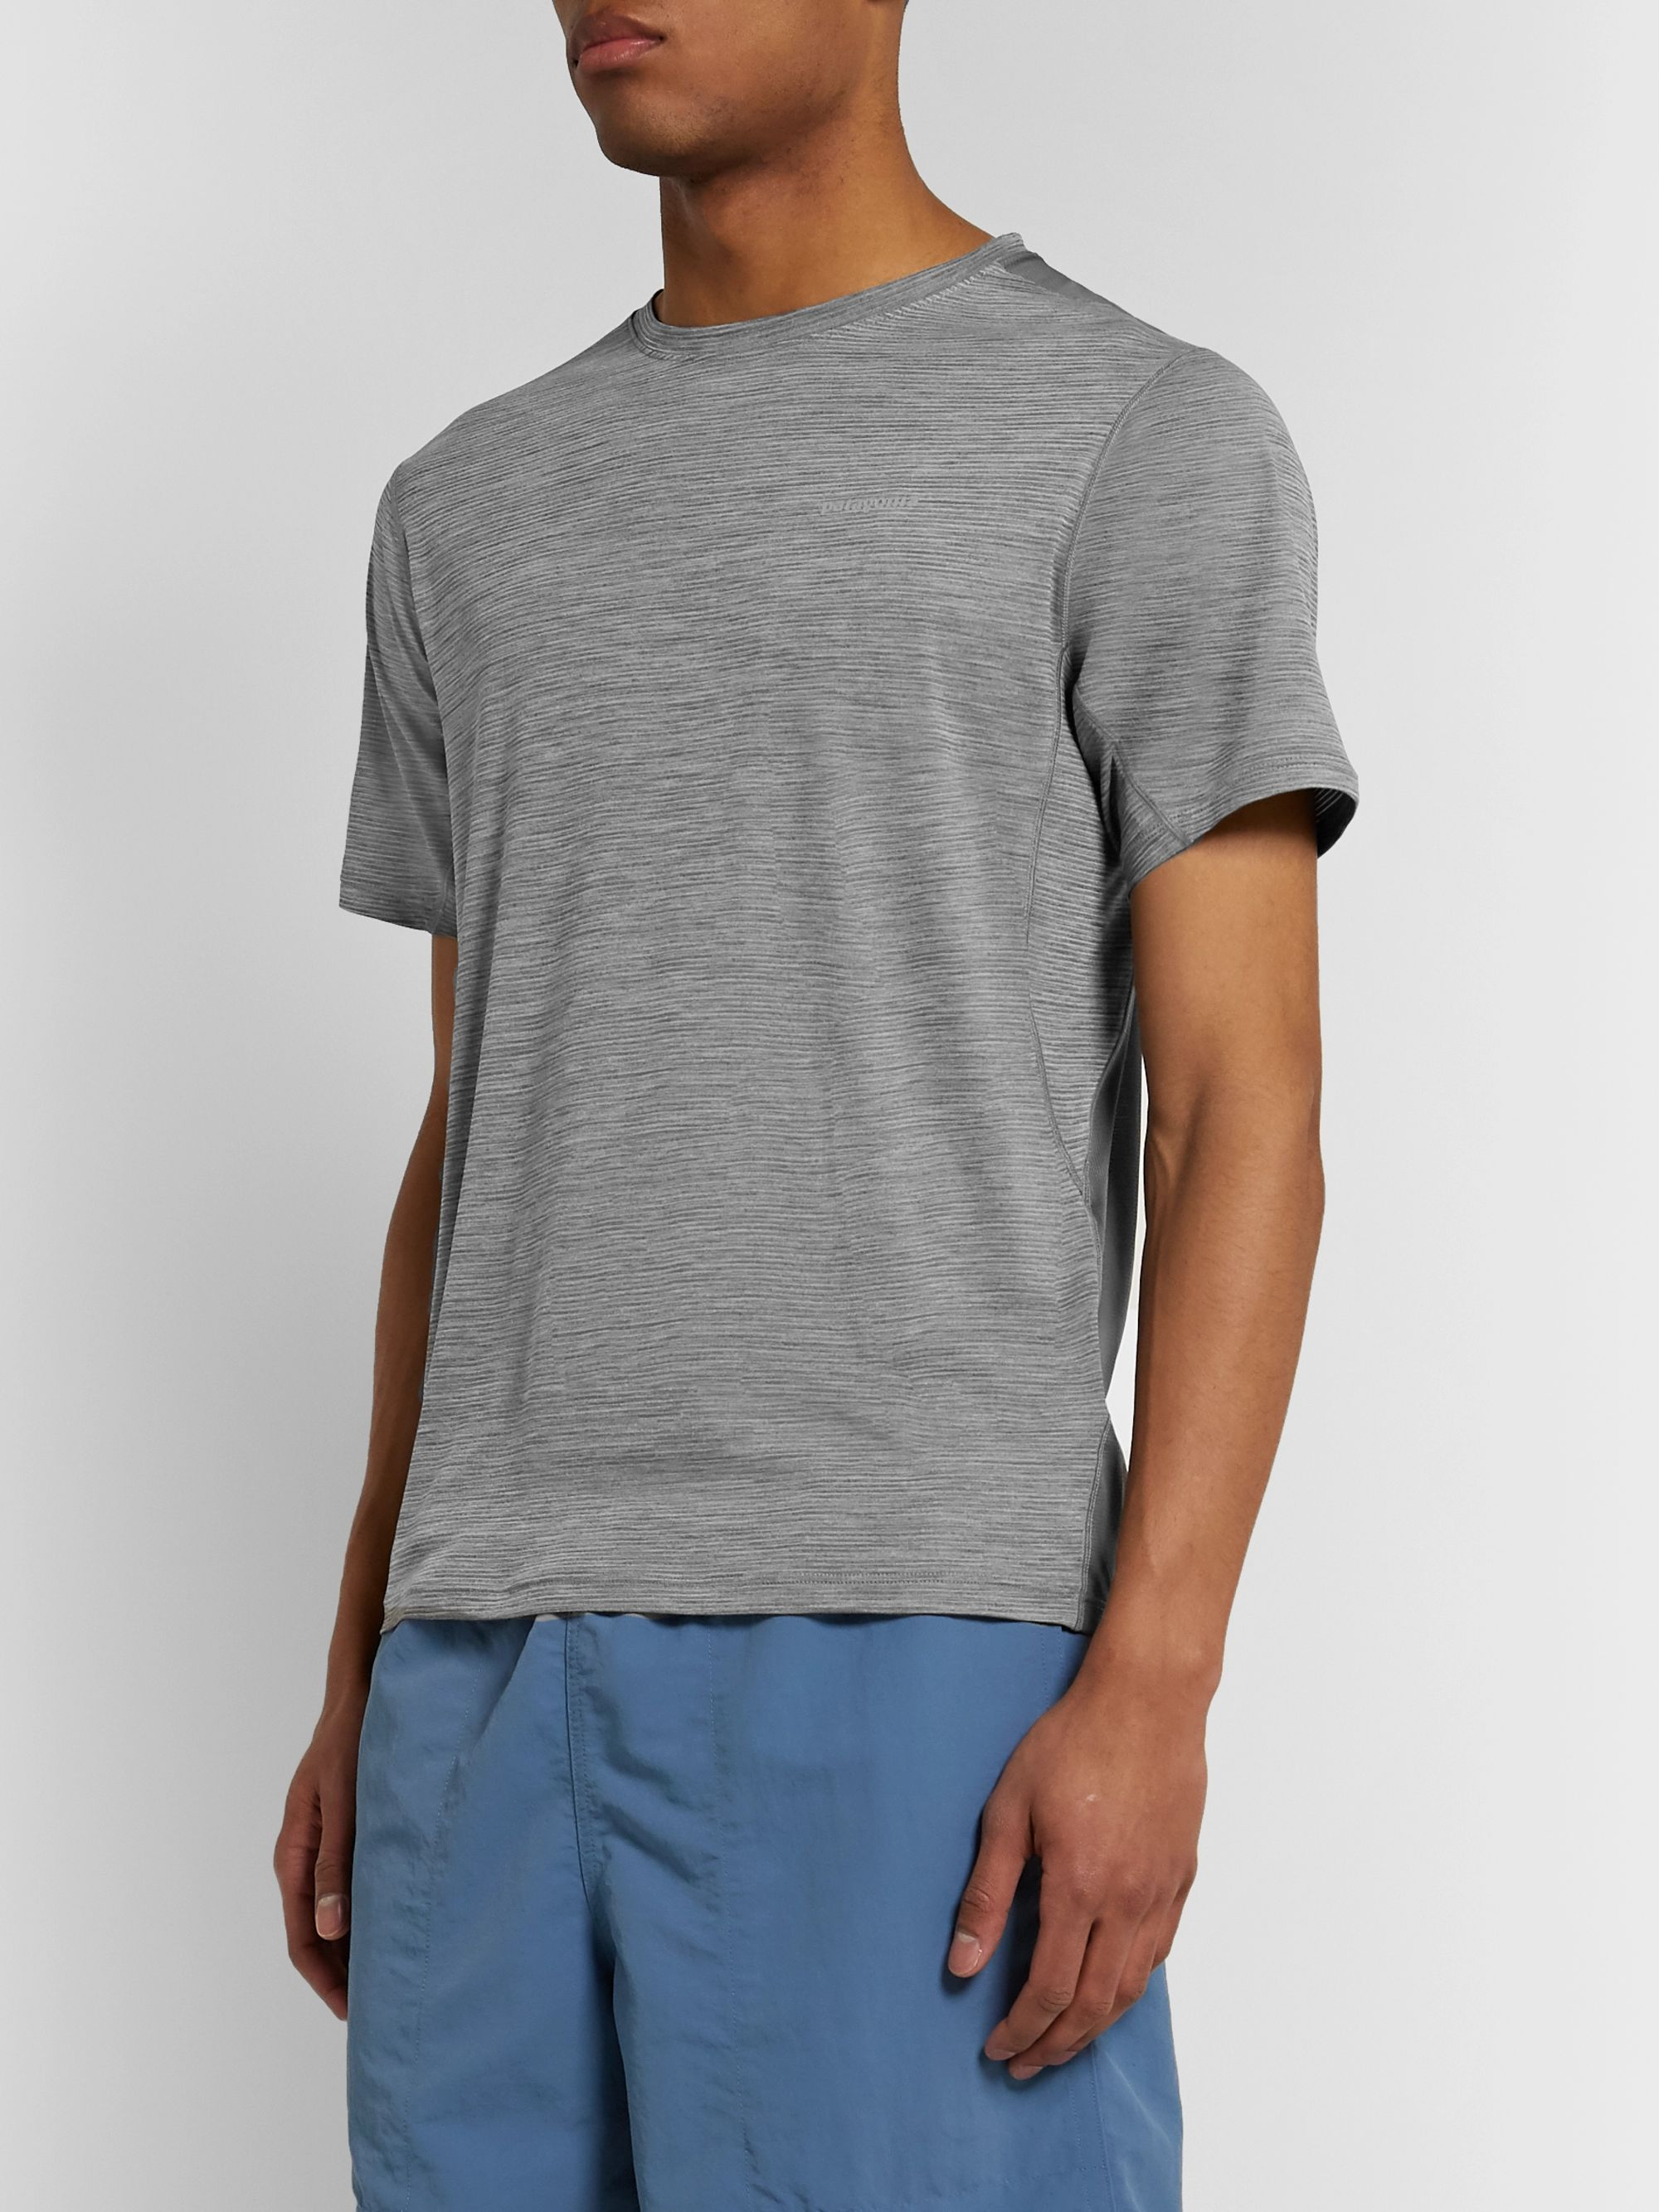 Patagonia Airchaser Slim-Fit Space-Dyed Capilene Cool Lightweight and Mesh Base Layer